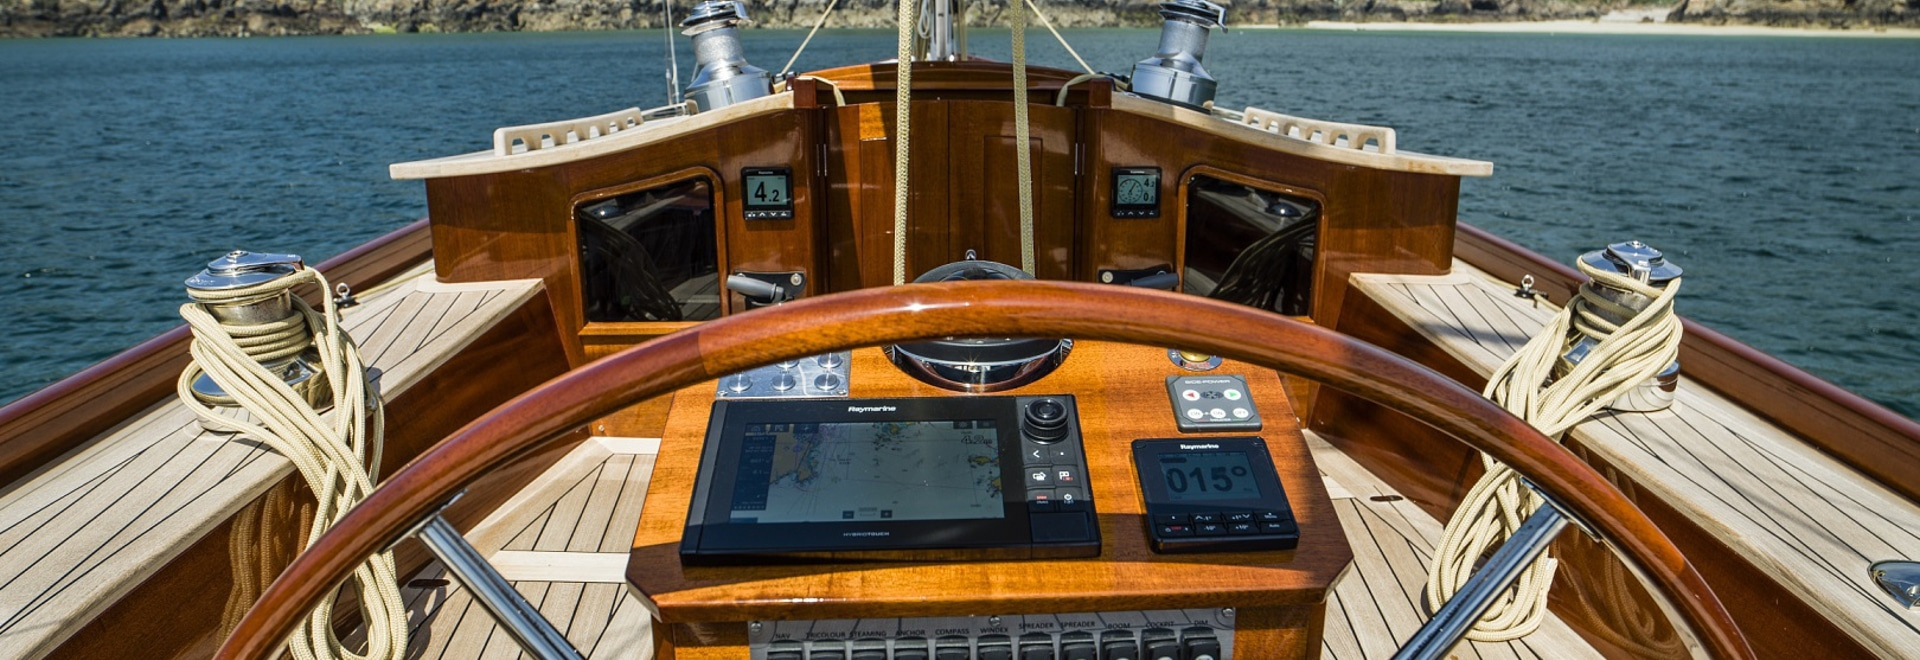 The Spirit 63DH will be launched at TheYachtMarket.com Southampton Boat Show